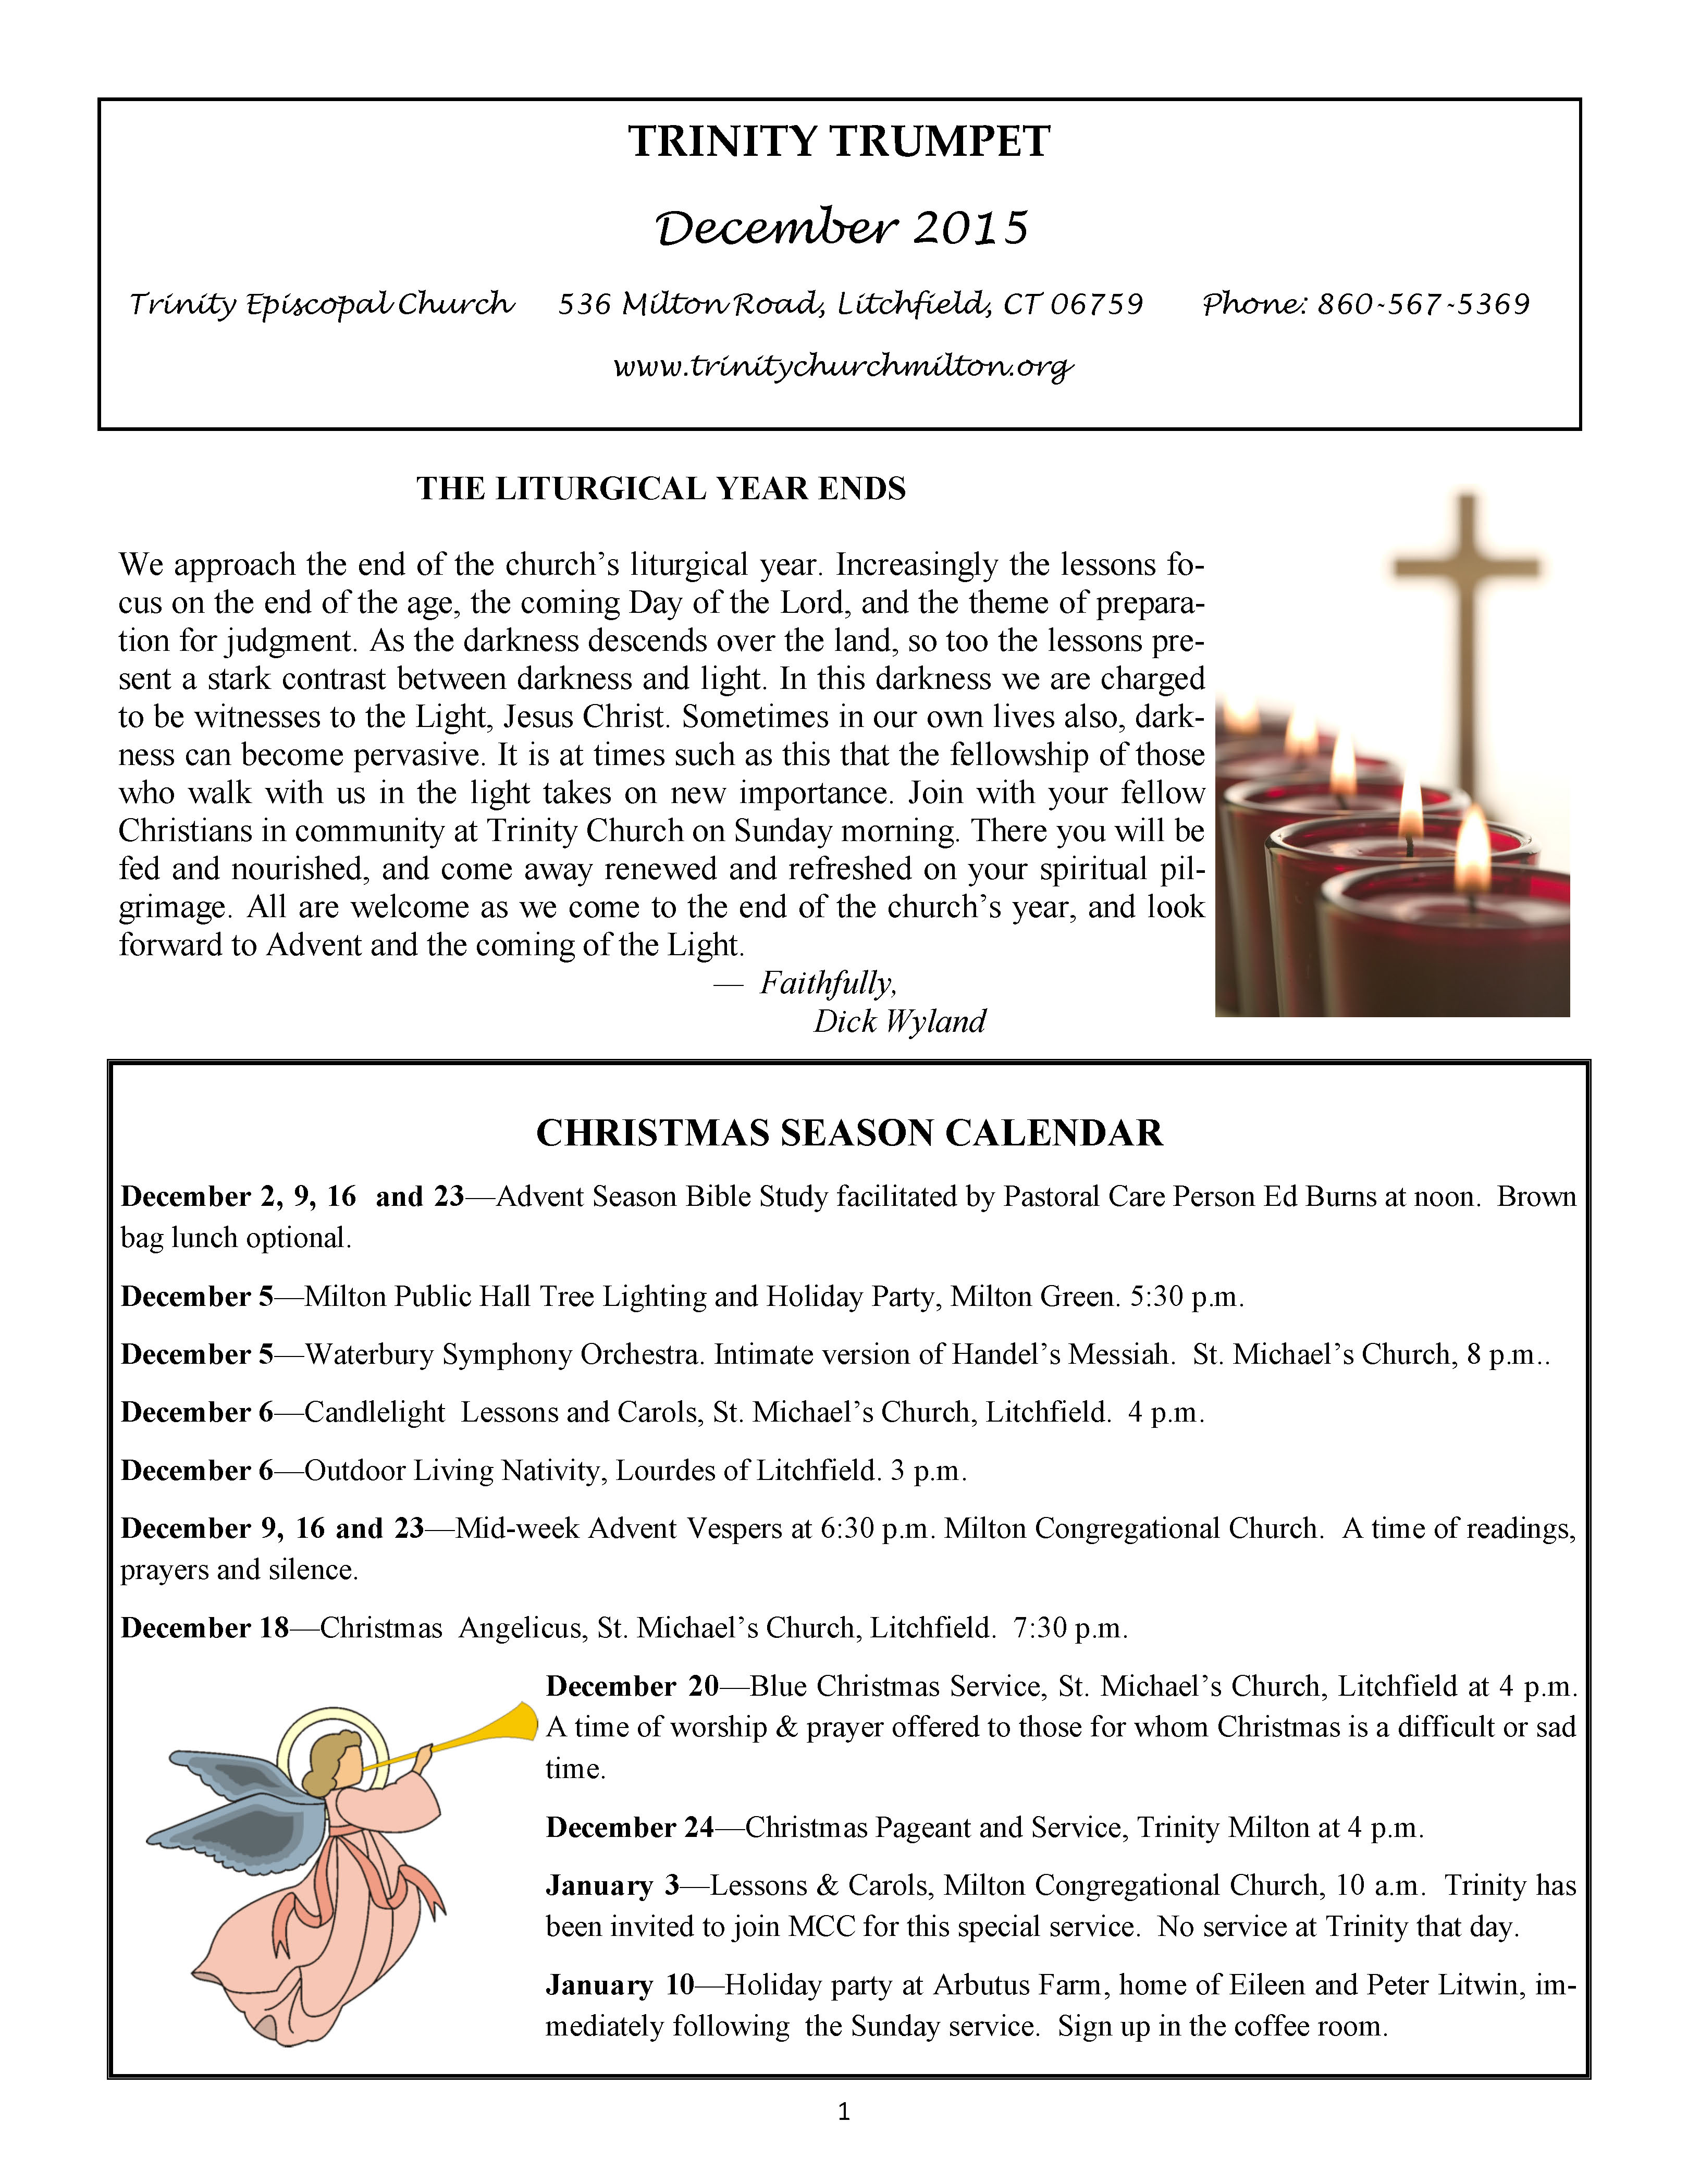 Trinity Trumpet December 2015_Page_1